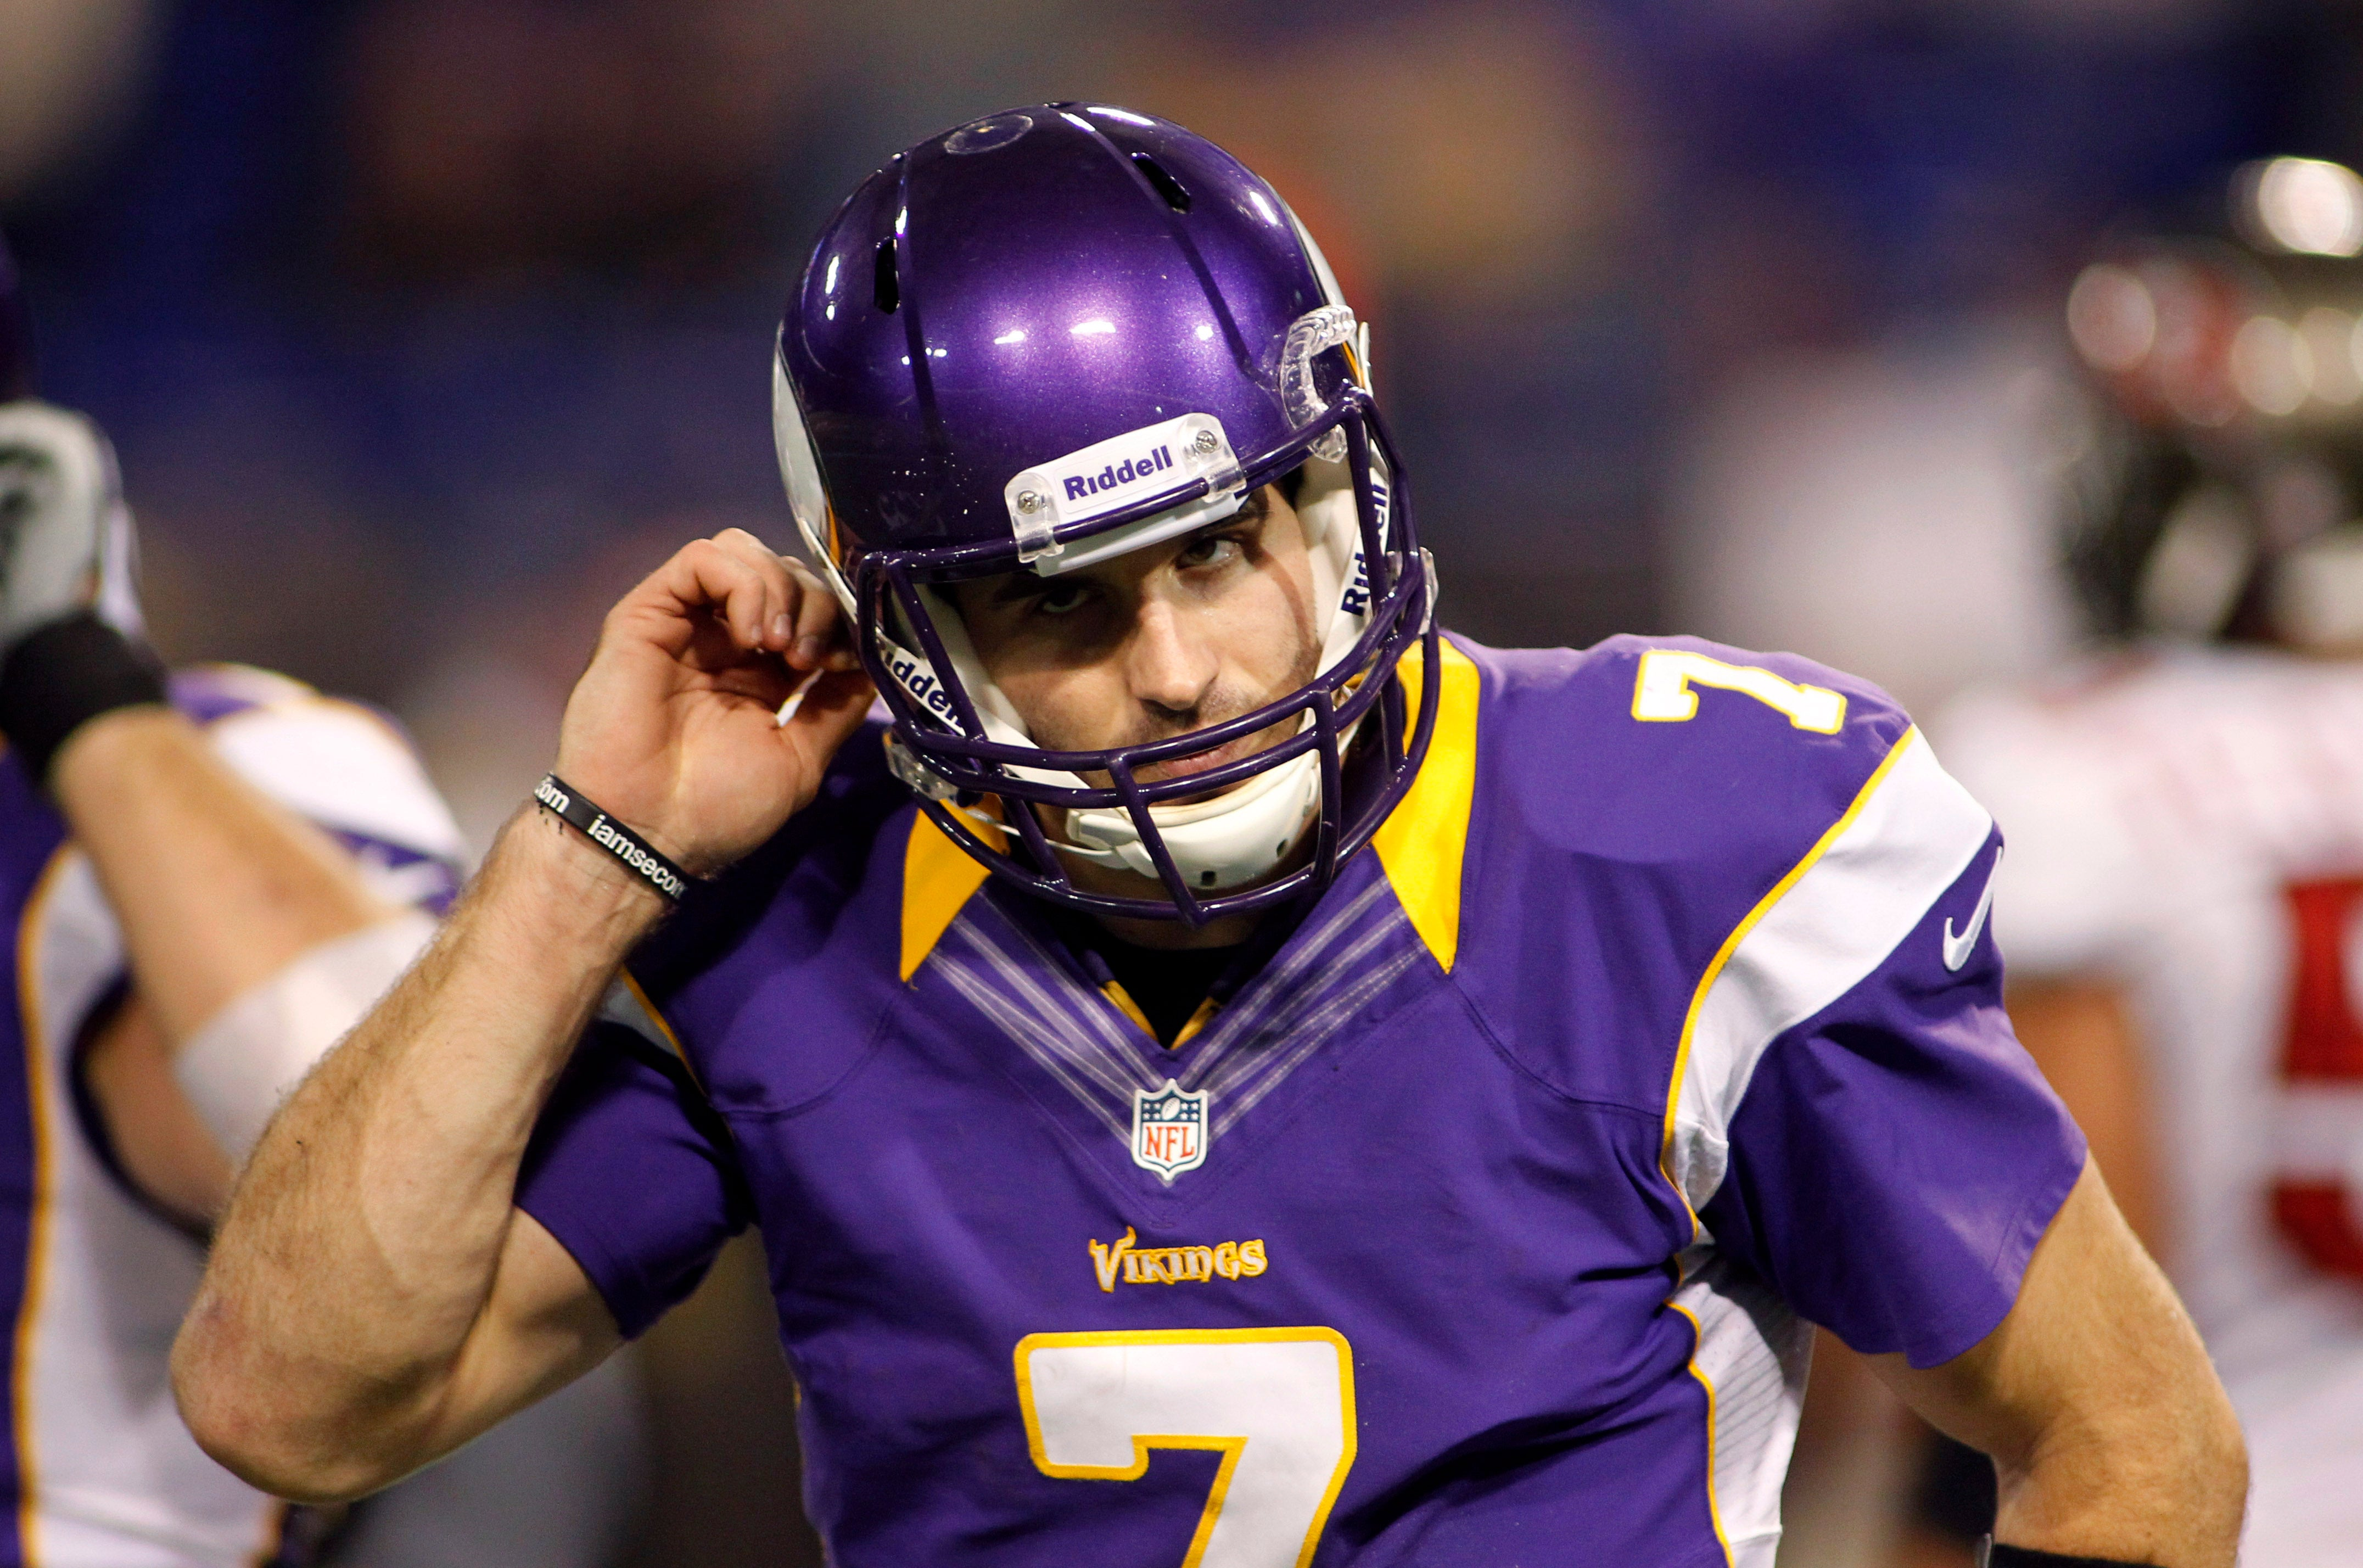 Christian Ponder Jokes About His ESPN Girlfriend, Is A Pretty Cool Guy